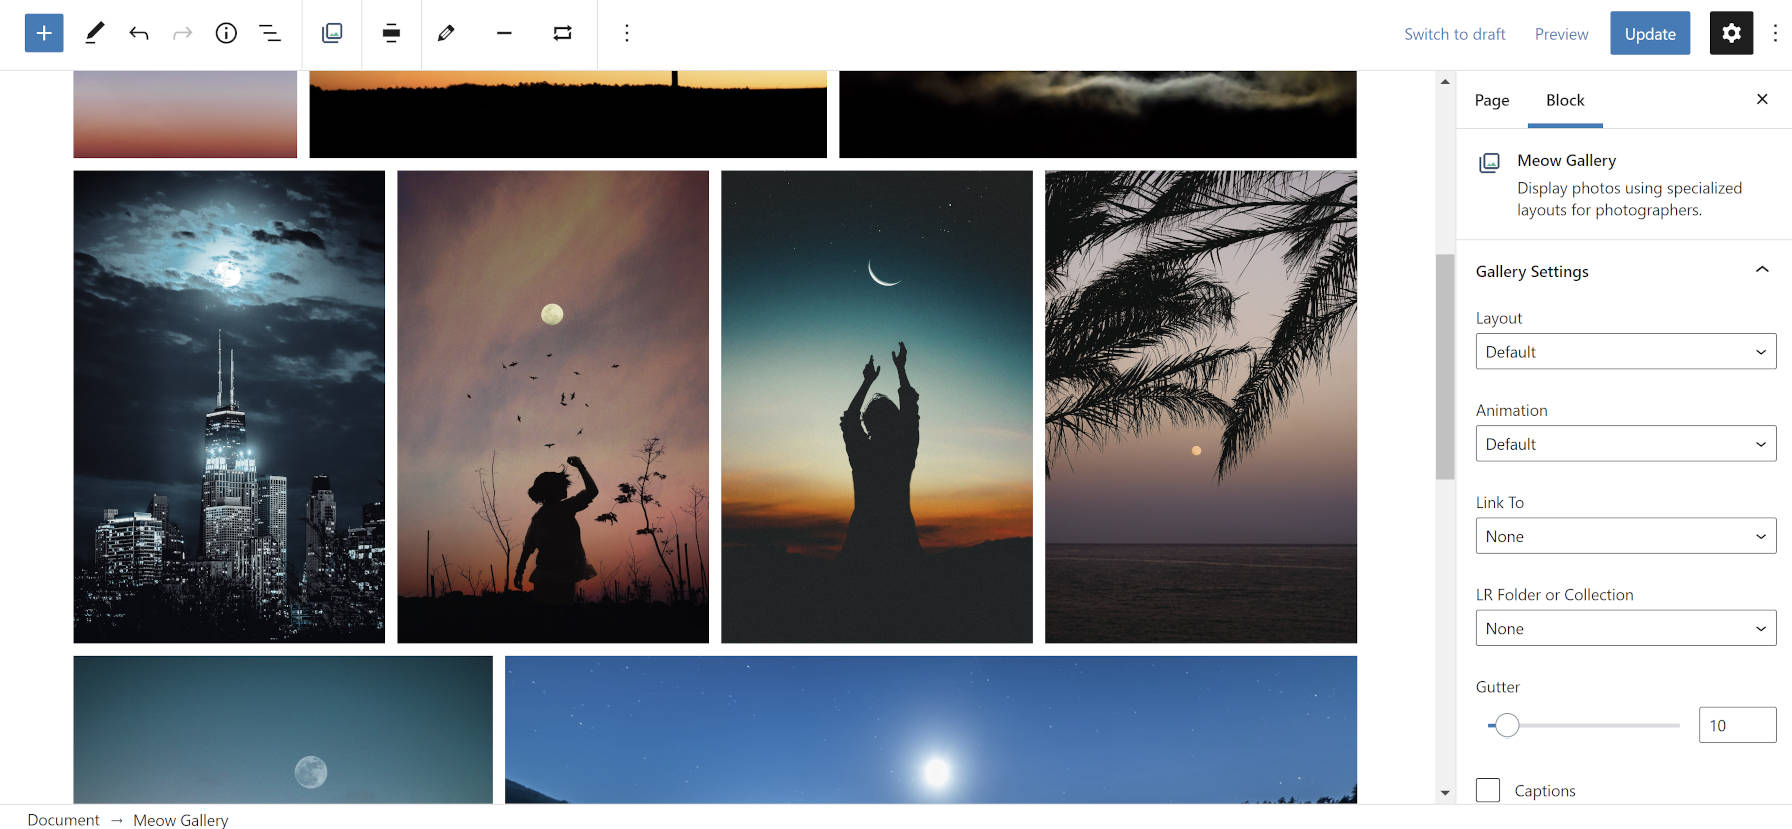 Tiled image gallery using the Meow Gallery plugin.